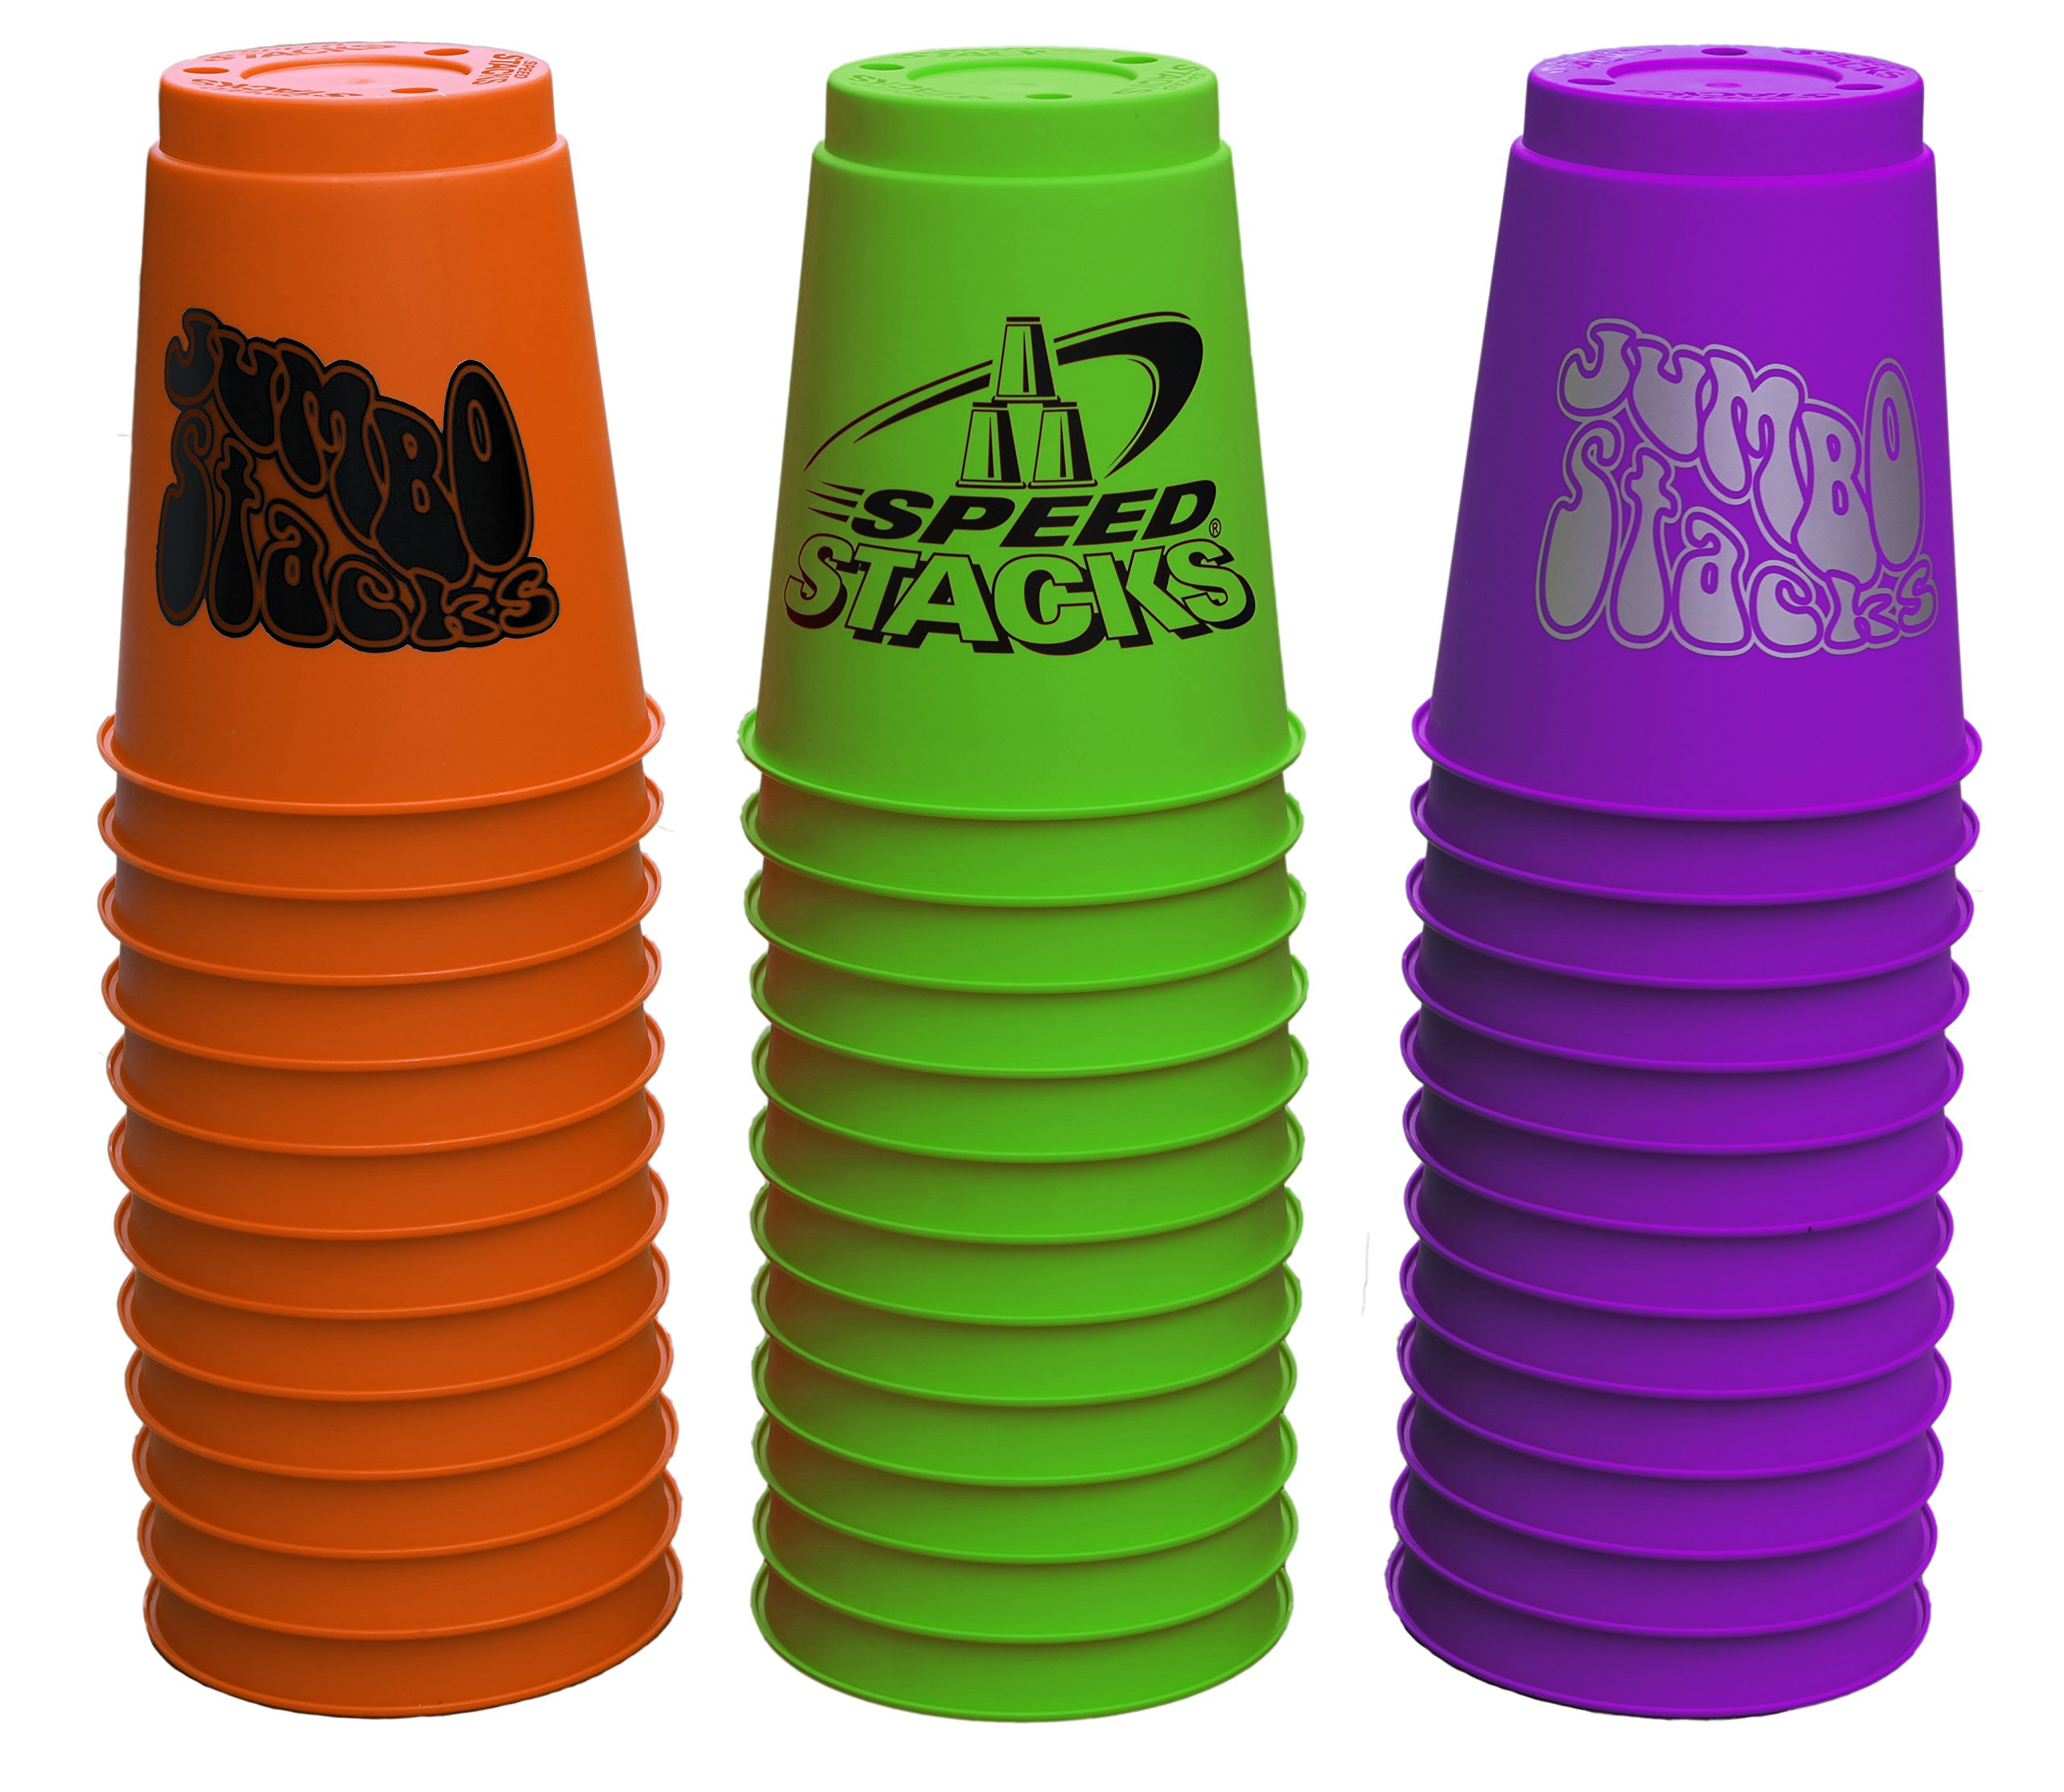 SPEED STACKS Jumbos (3 set pack) by Speed Stacks